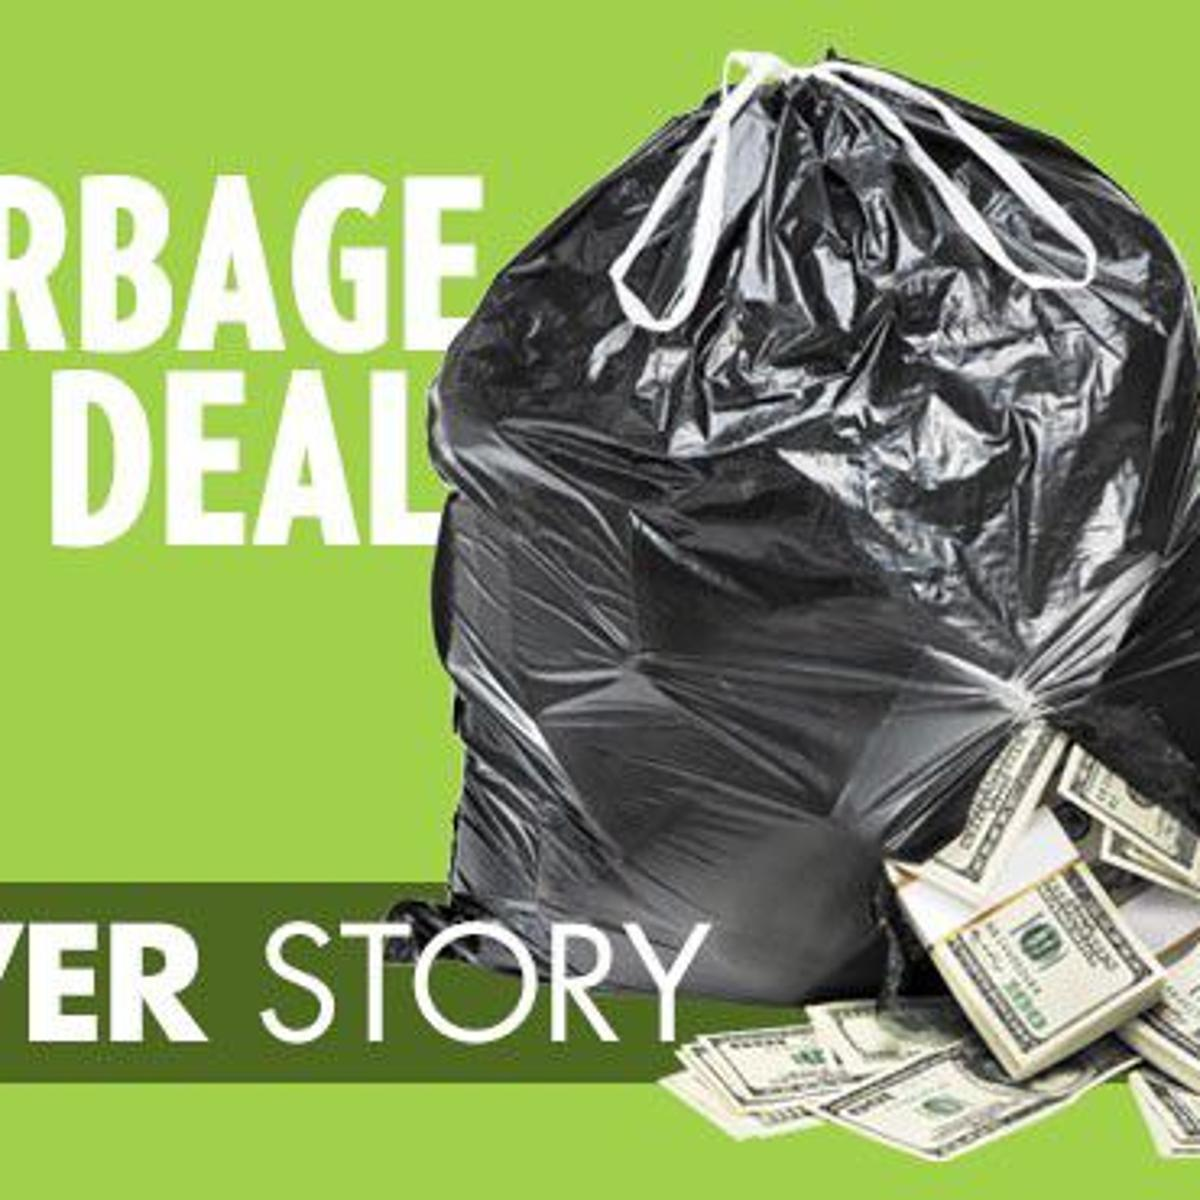 How Indy's new recycling deal could cost taxpayers millions | News